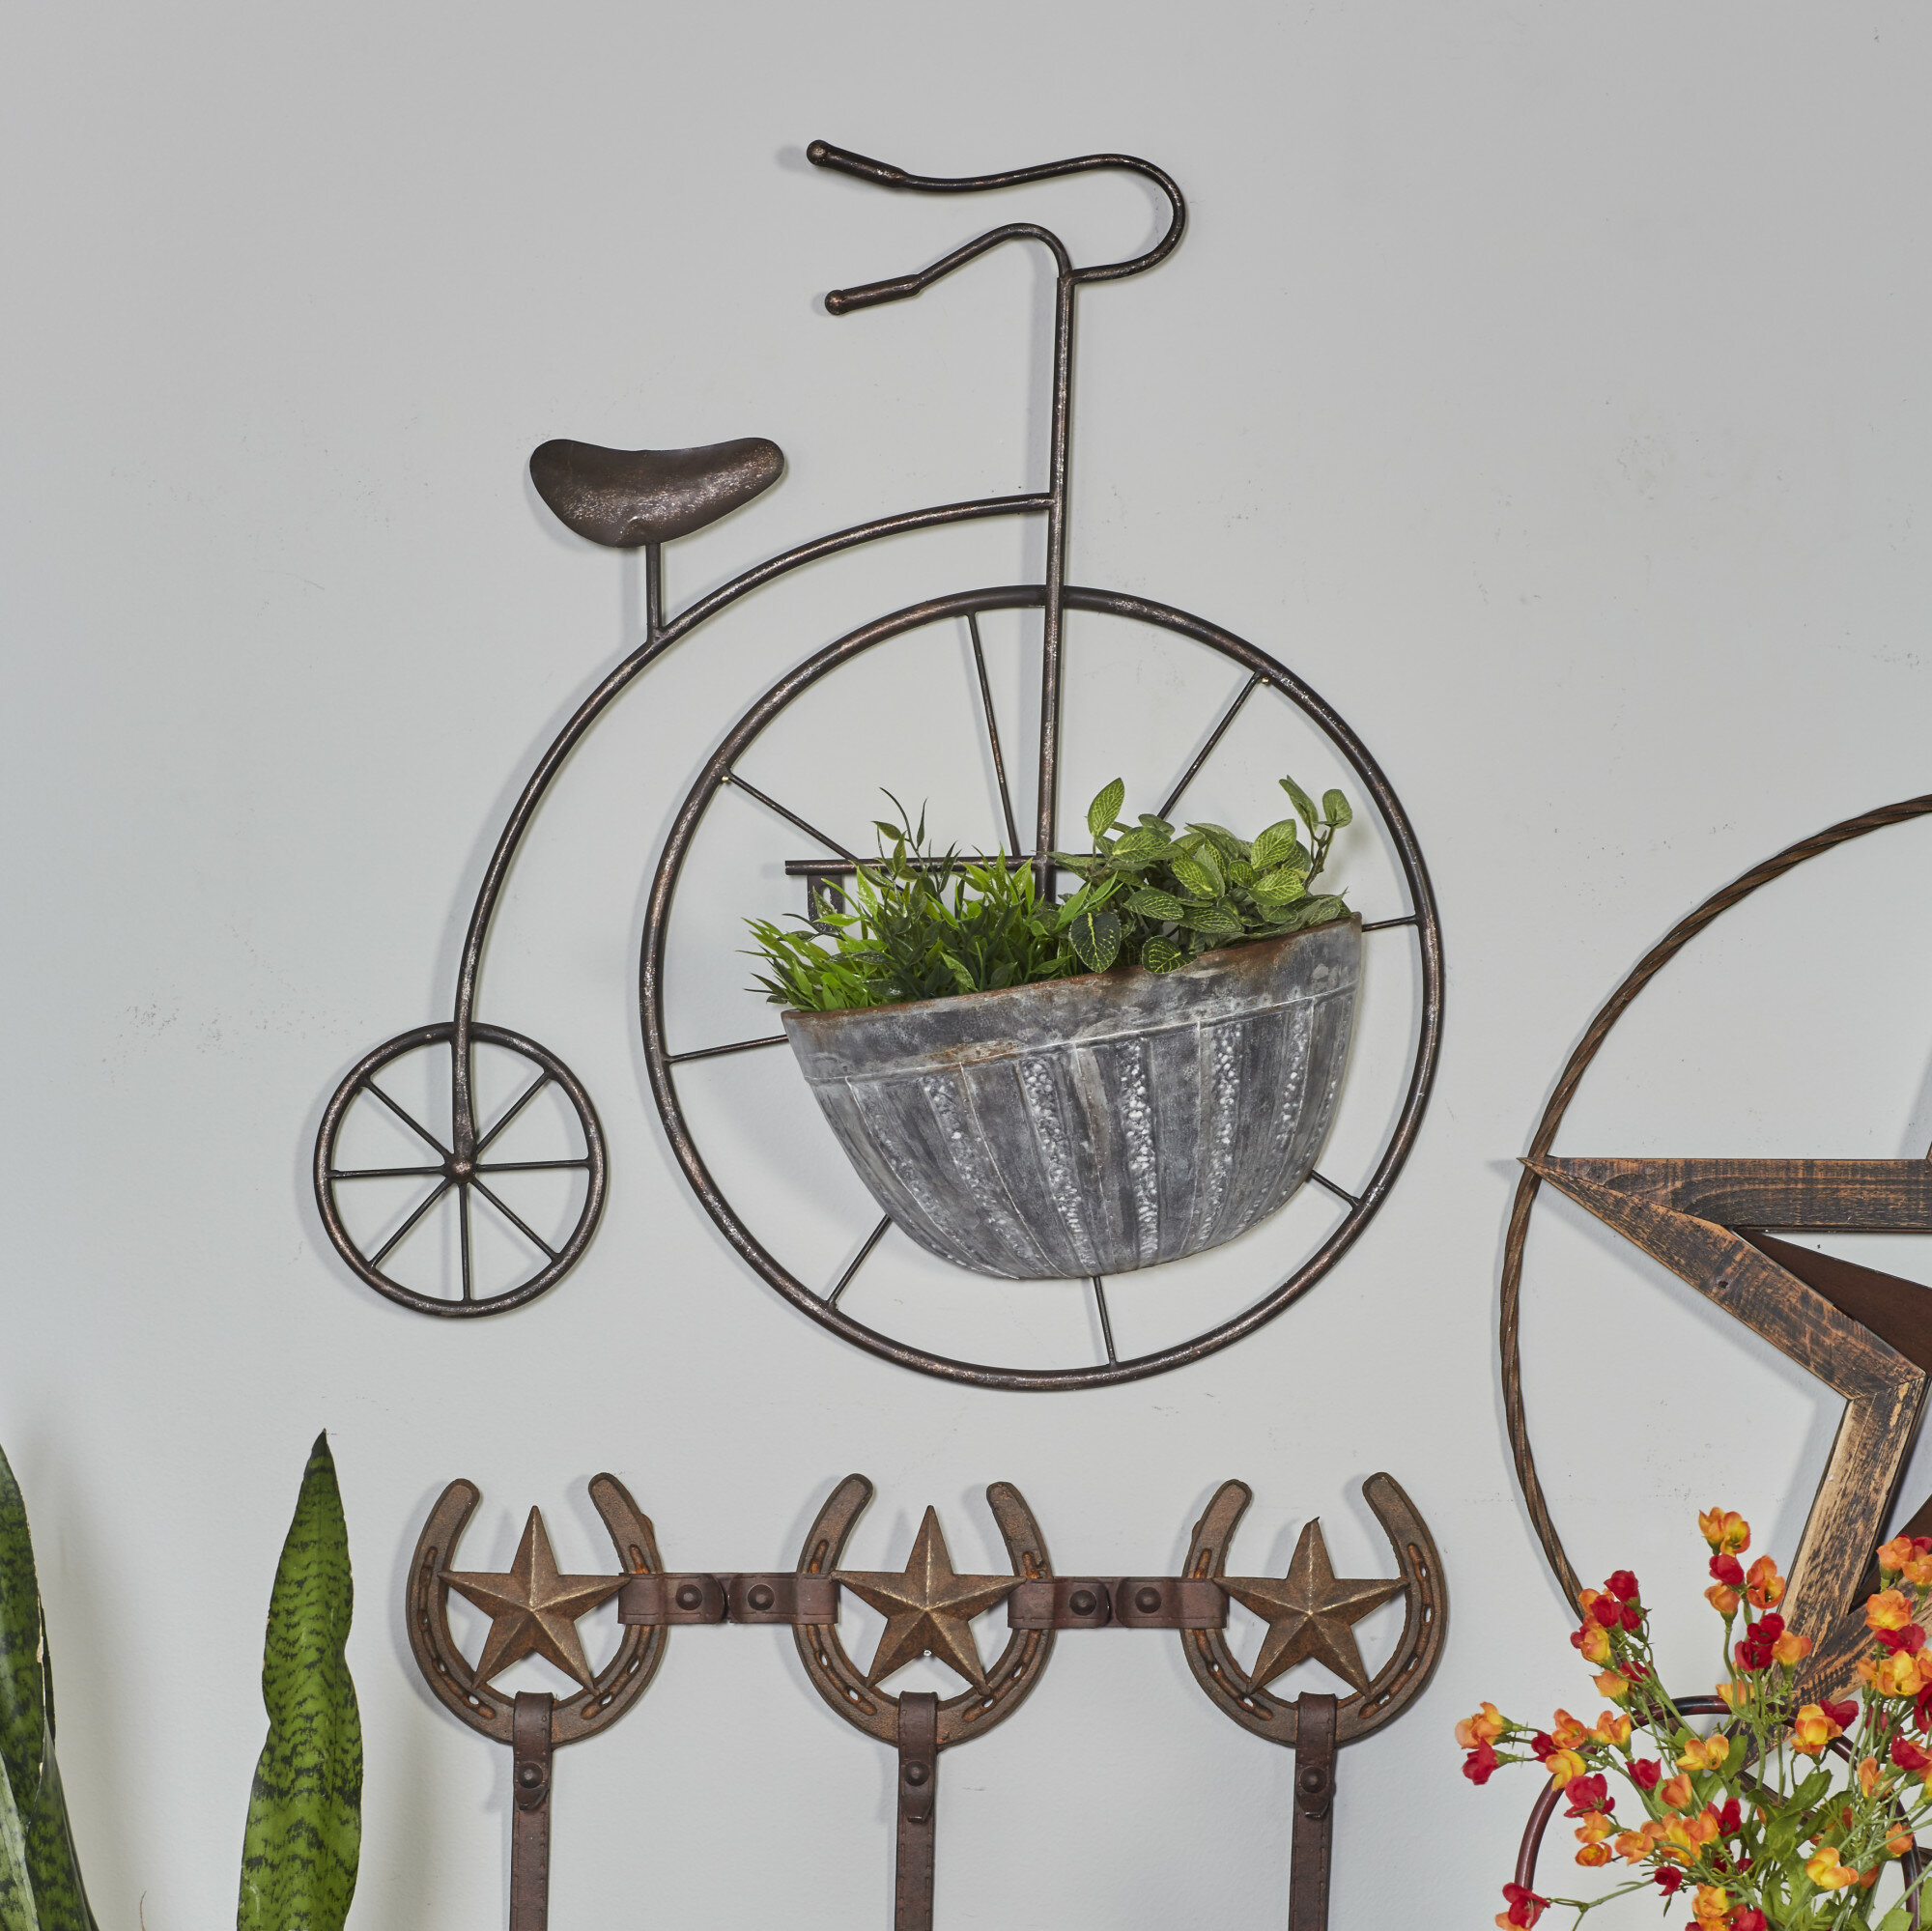 Delivery Trike Planter Rustic Three Wheeler